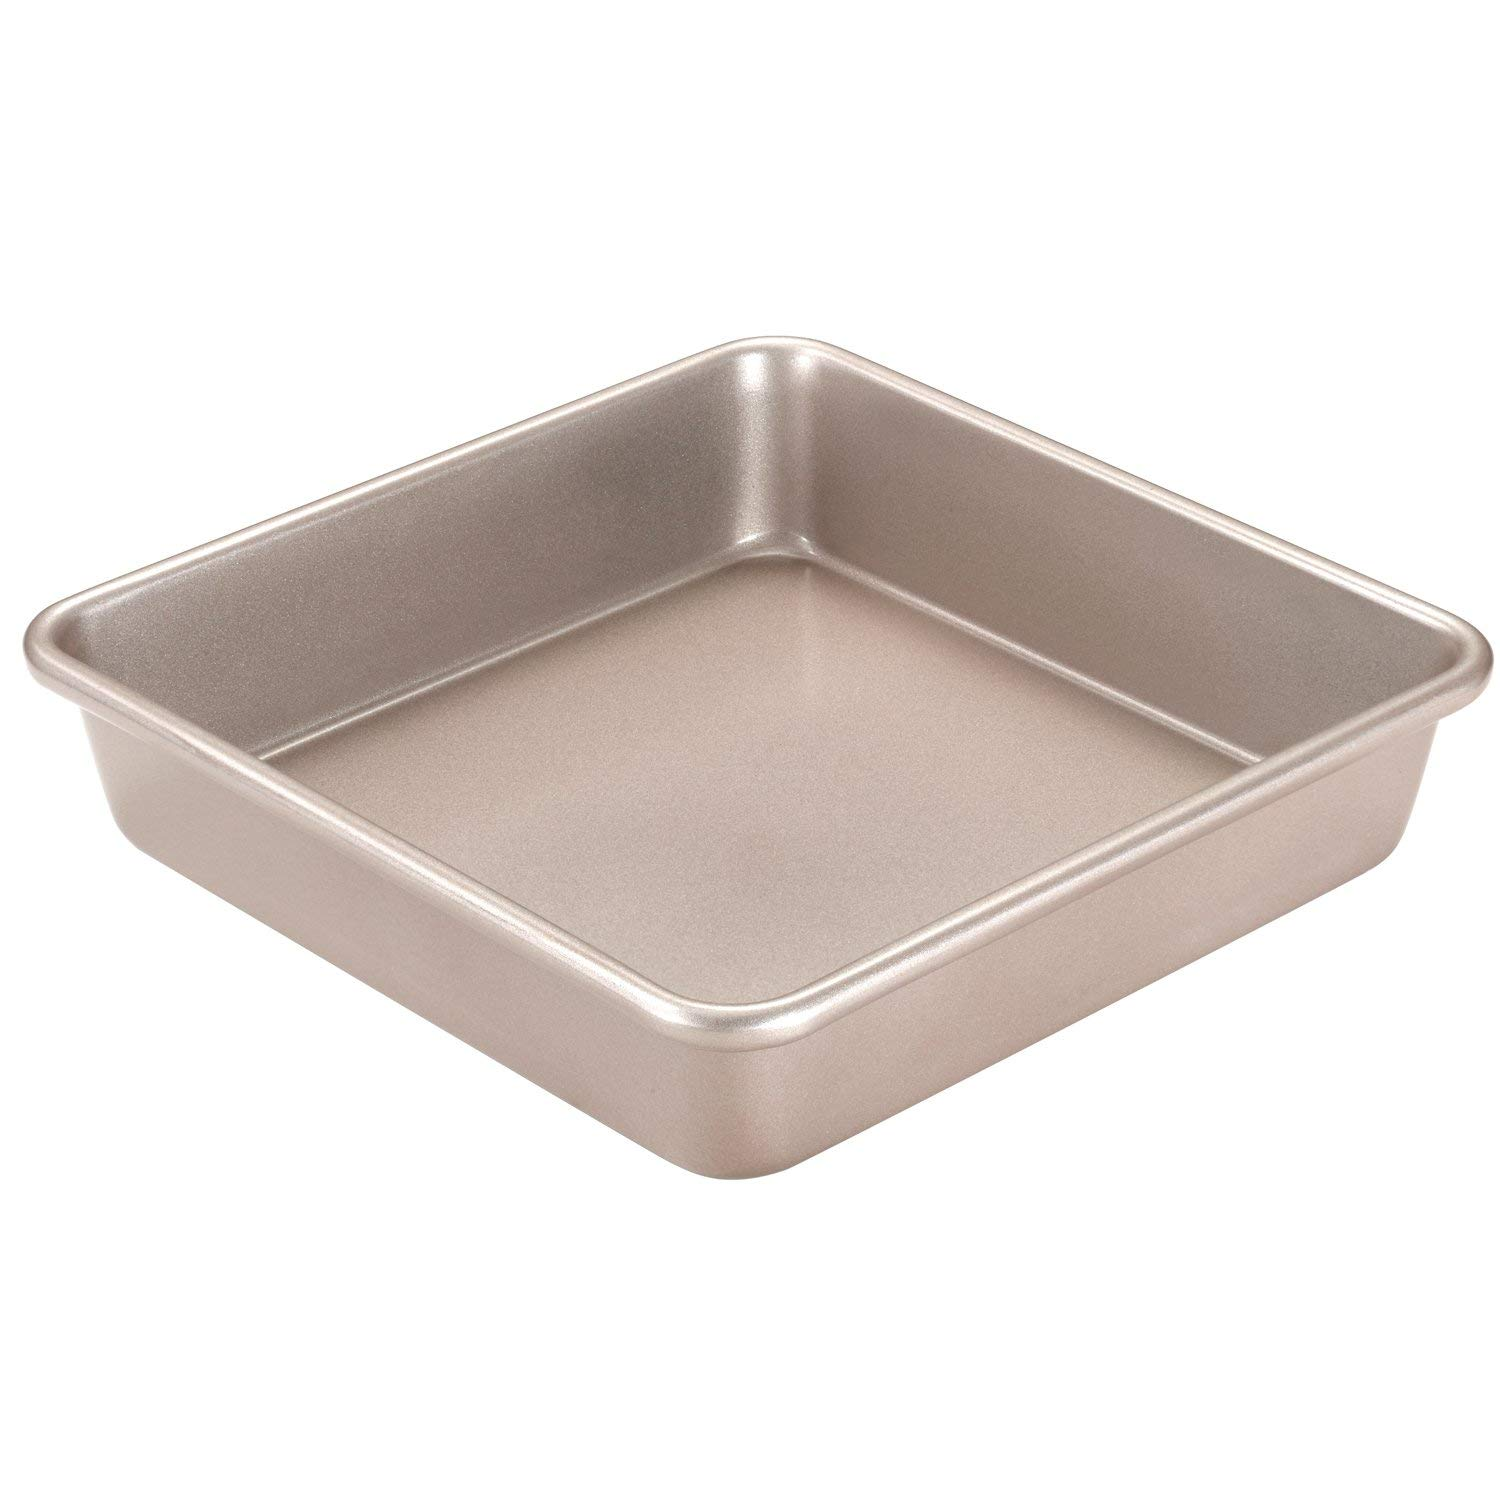 CHEFMADE Square Cake Pan, 8-Inch Bakeware Non-Stick Heavy Duty Carbon Steel Pan Deep Dish Oven Baking Mold Baking Tray Ovenware for Cakes, Bread, Pizza, Cookies FDA Approved